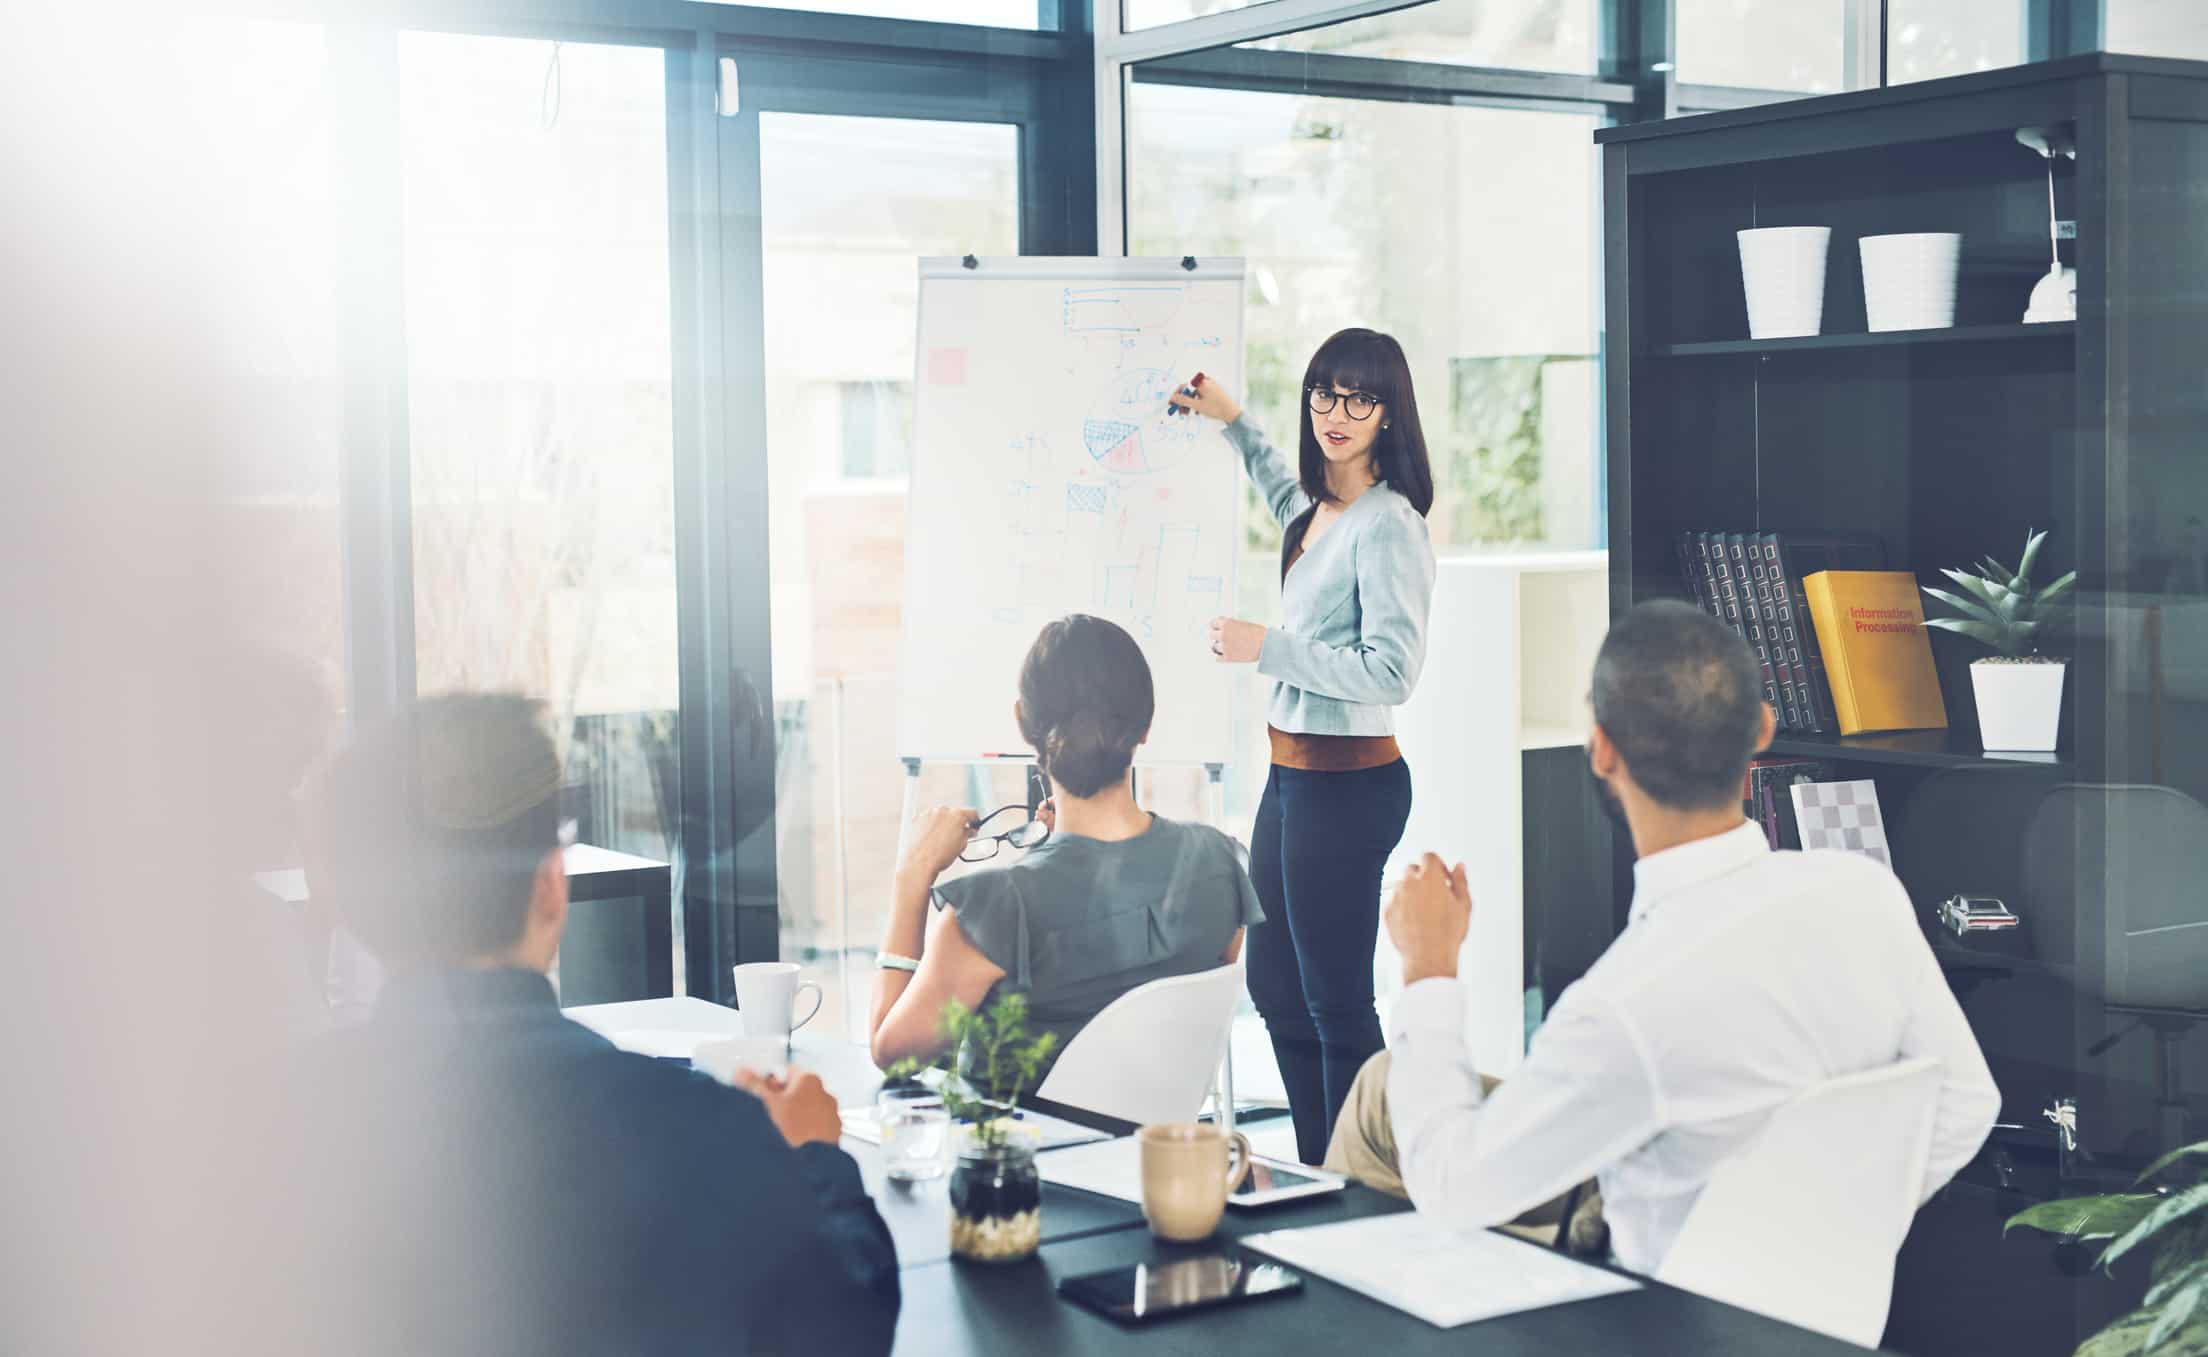 Shot of a group of corporate business people meeting in the boardroom